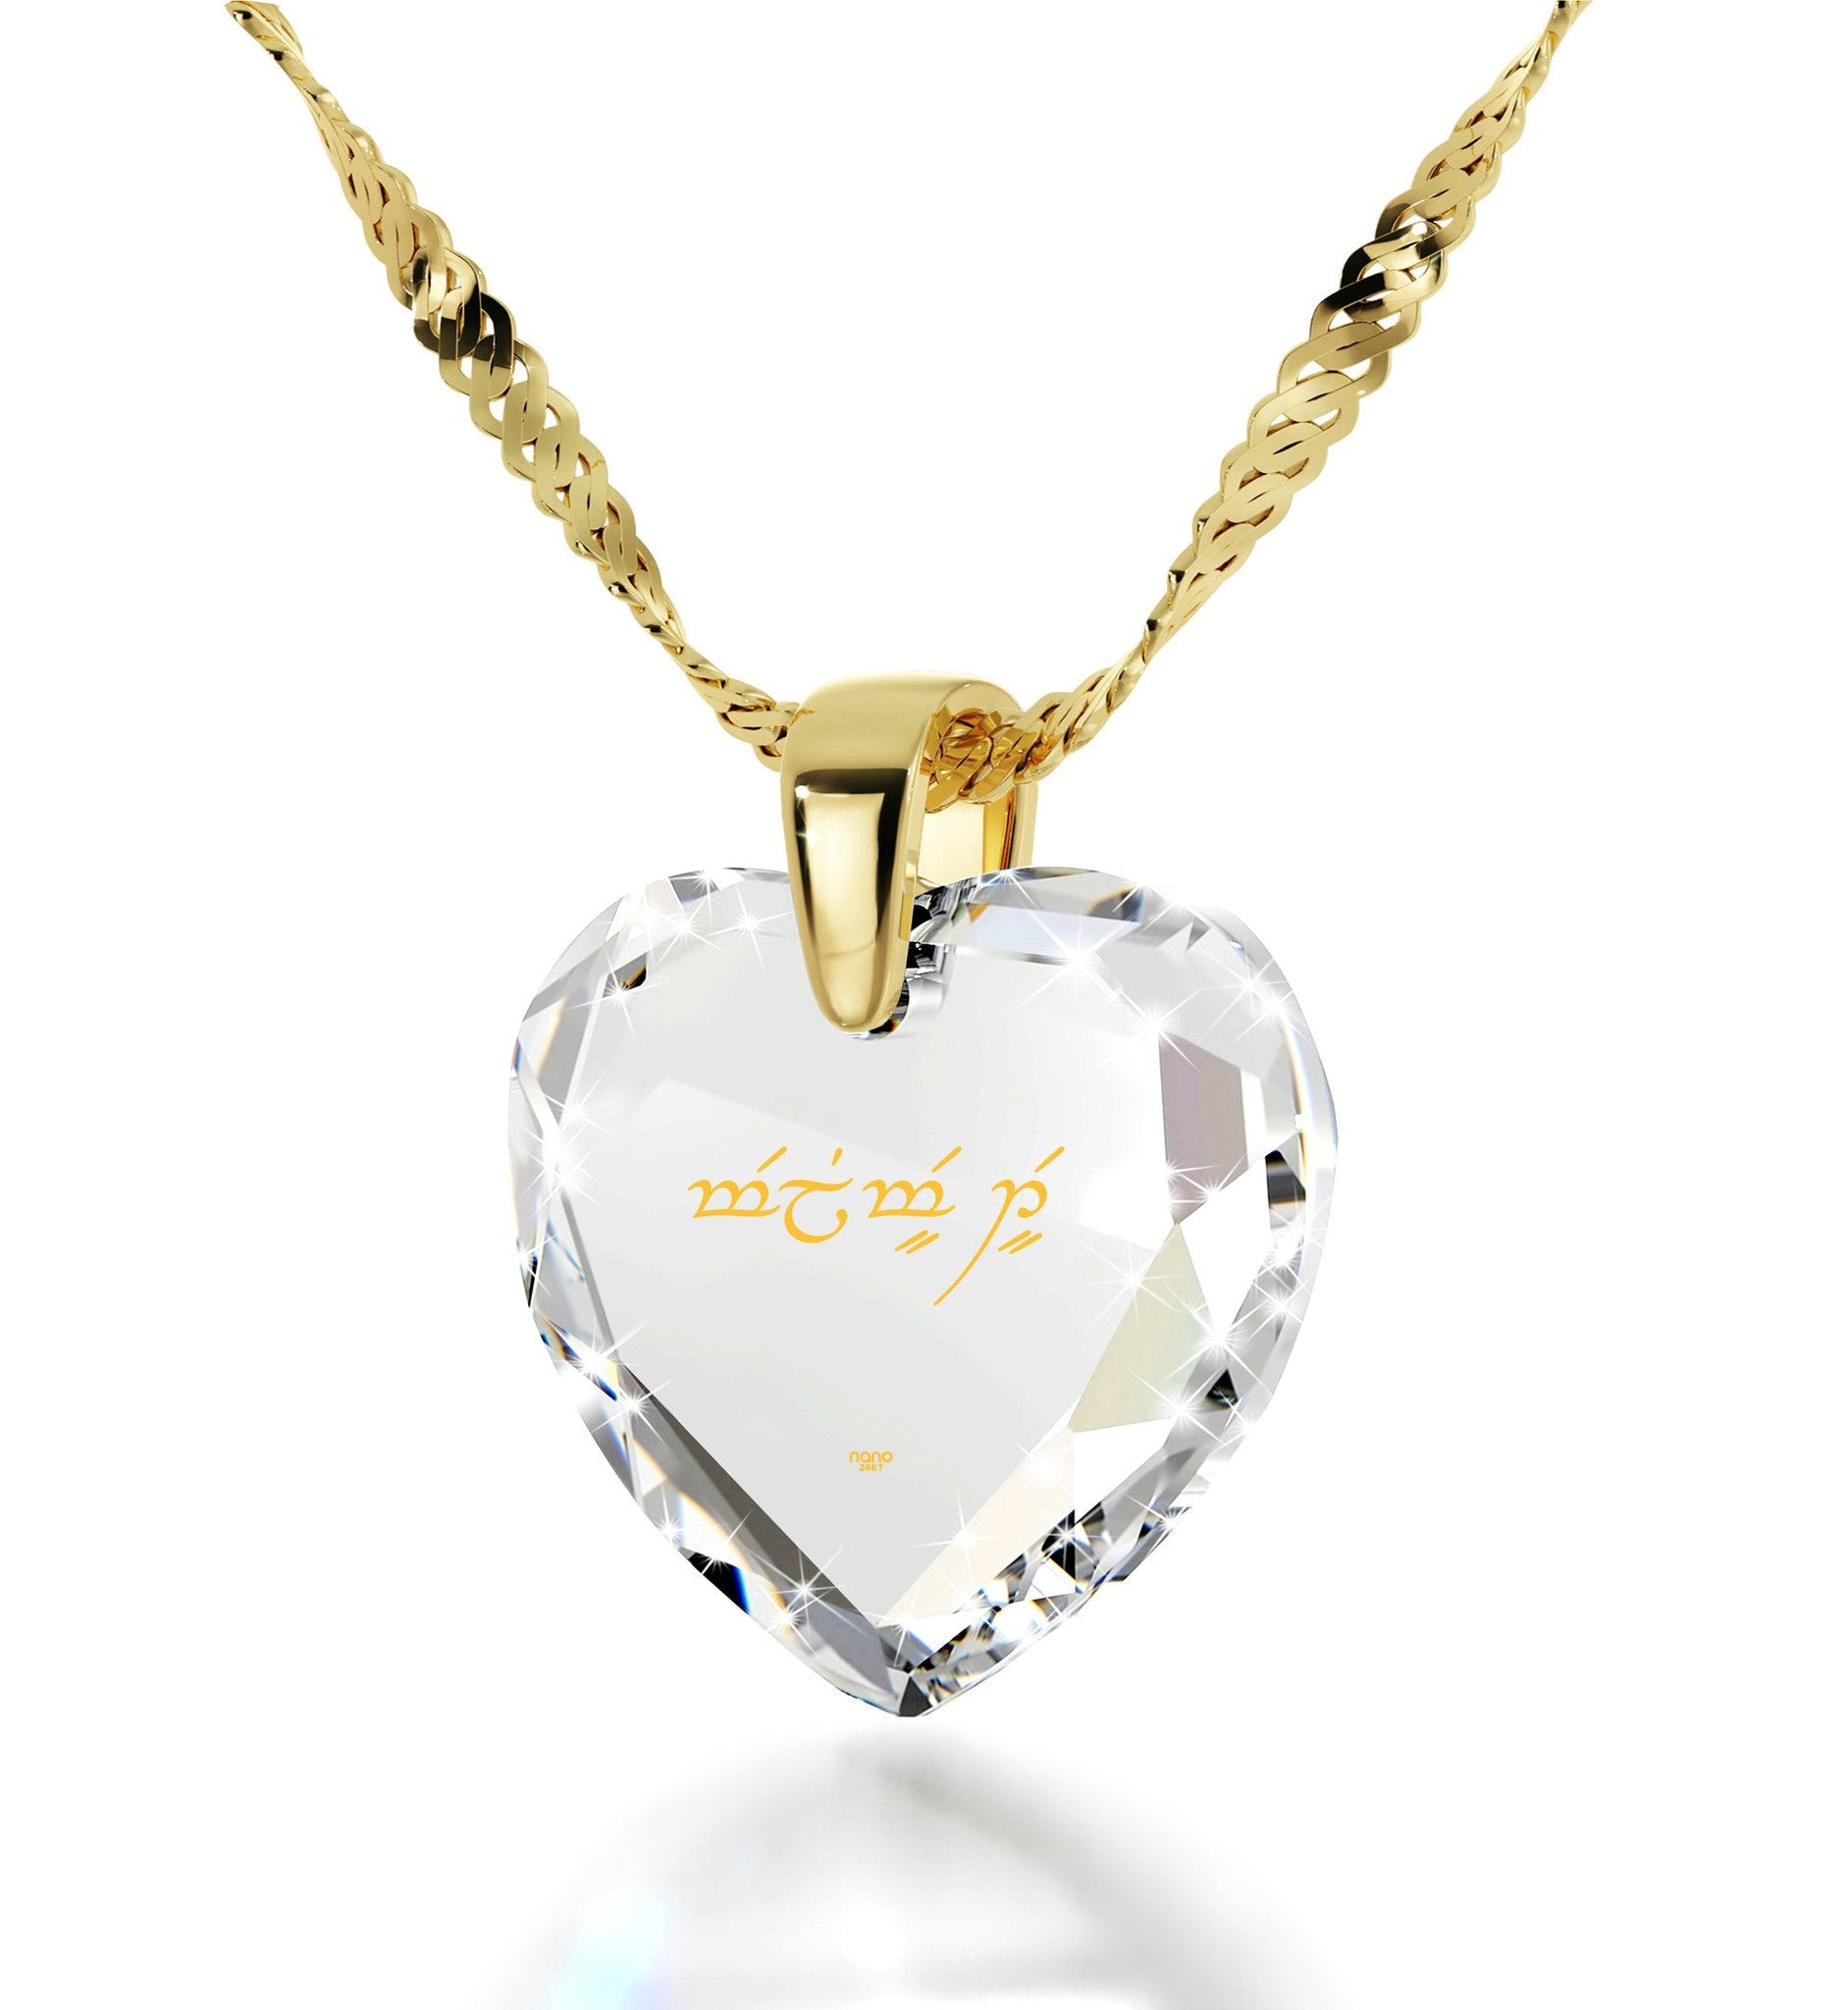 Cute Gifts for Her, Chic Real Gold Necklaces Only from Nano Jewelry